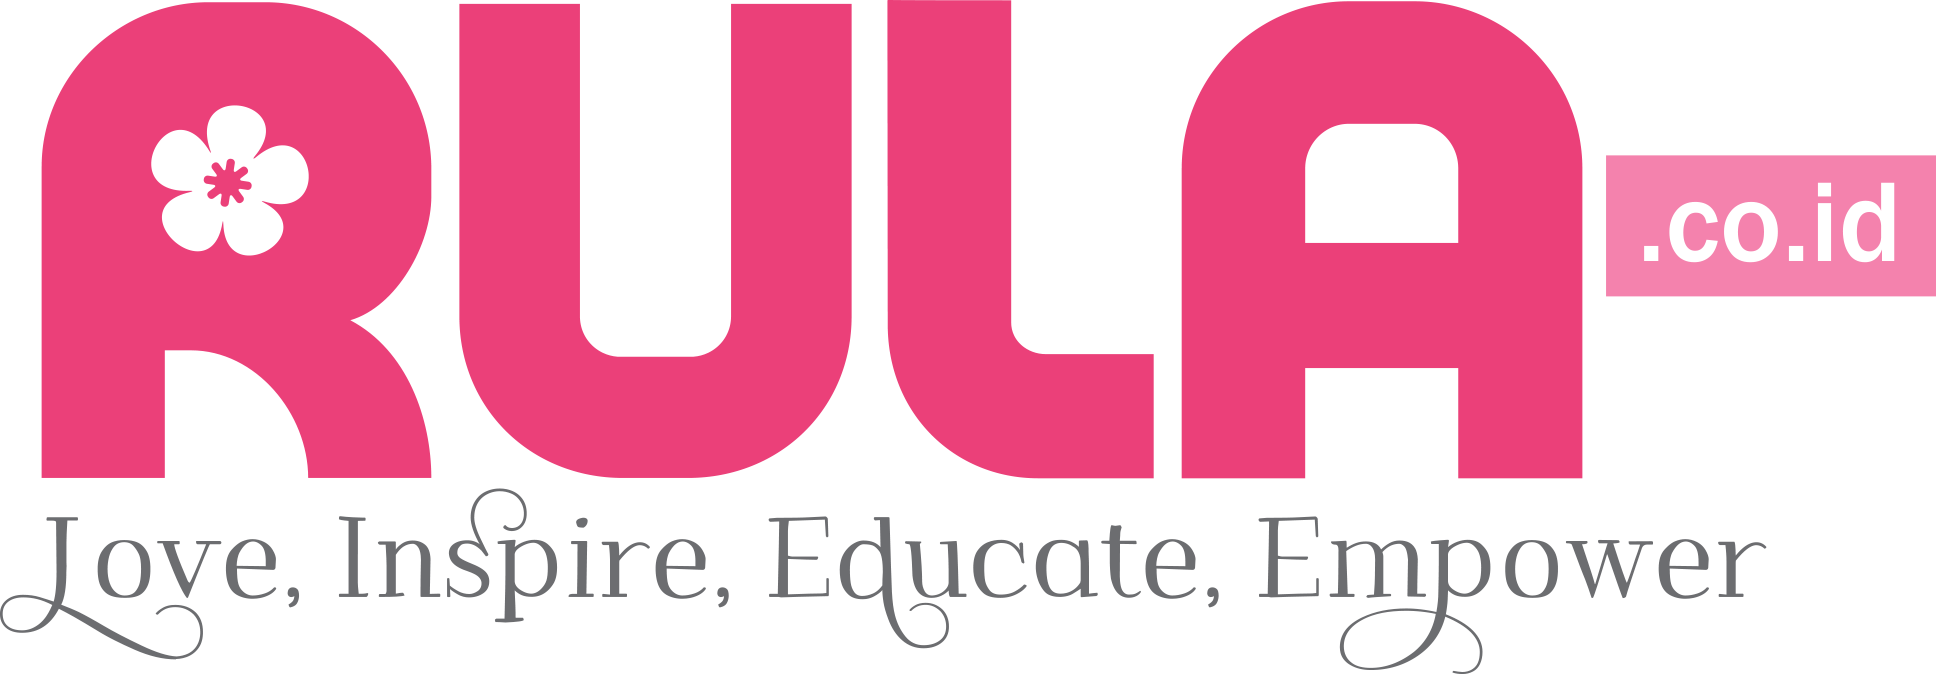 RULA.CO.ID – Love, Inspire, Educate, Empower